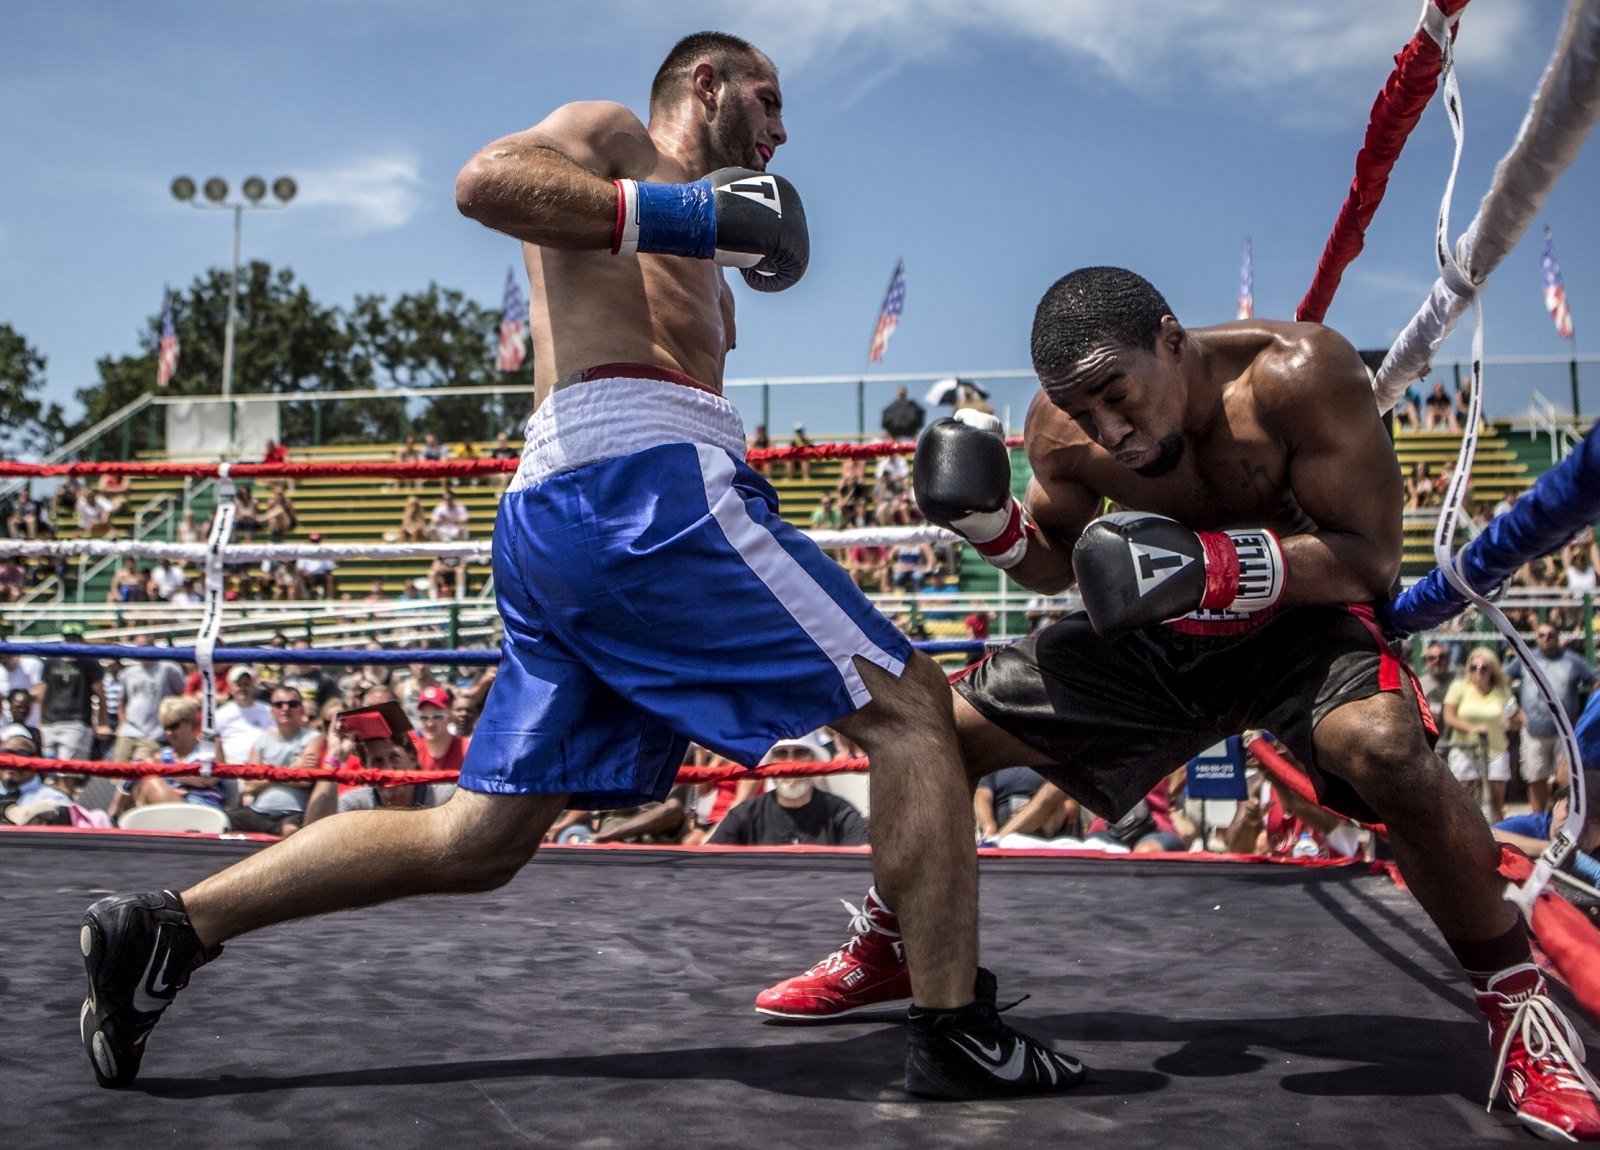 Art and Documentary Photography - Loading Boxing11.JPG